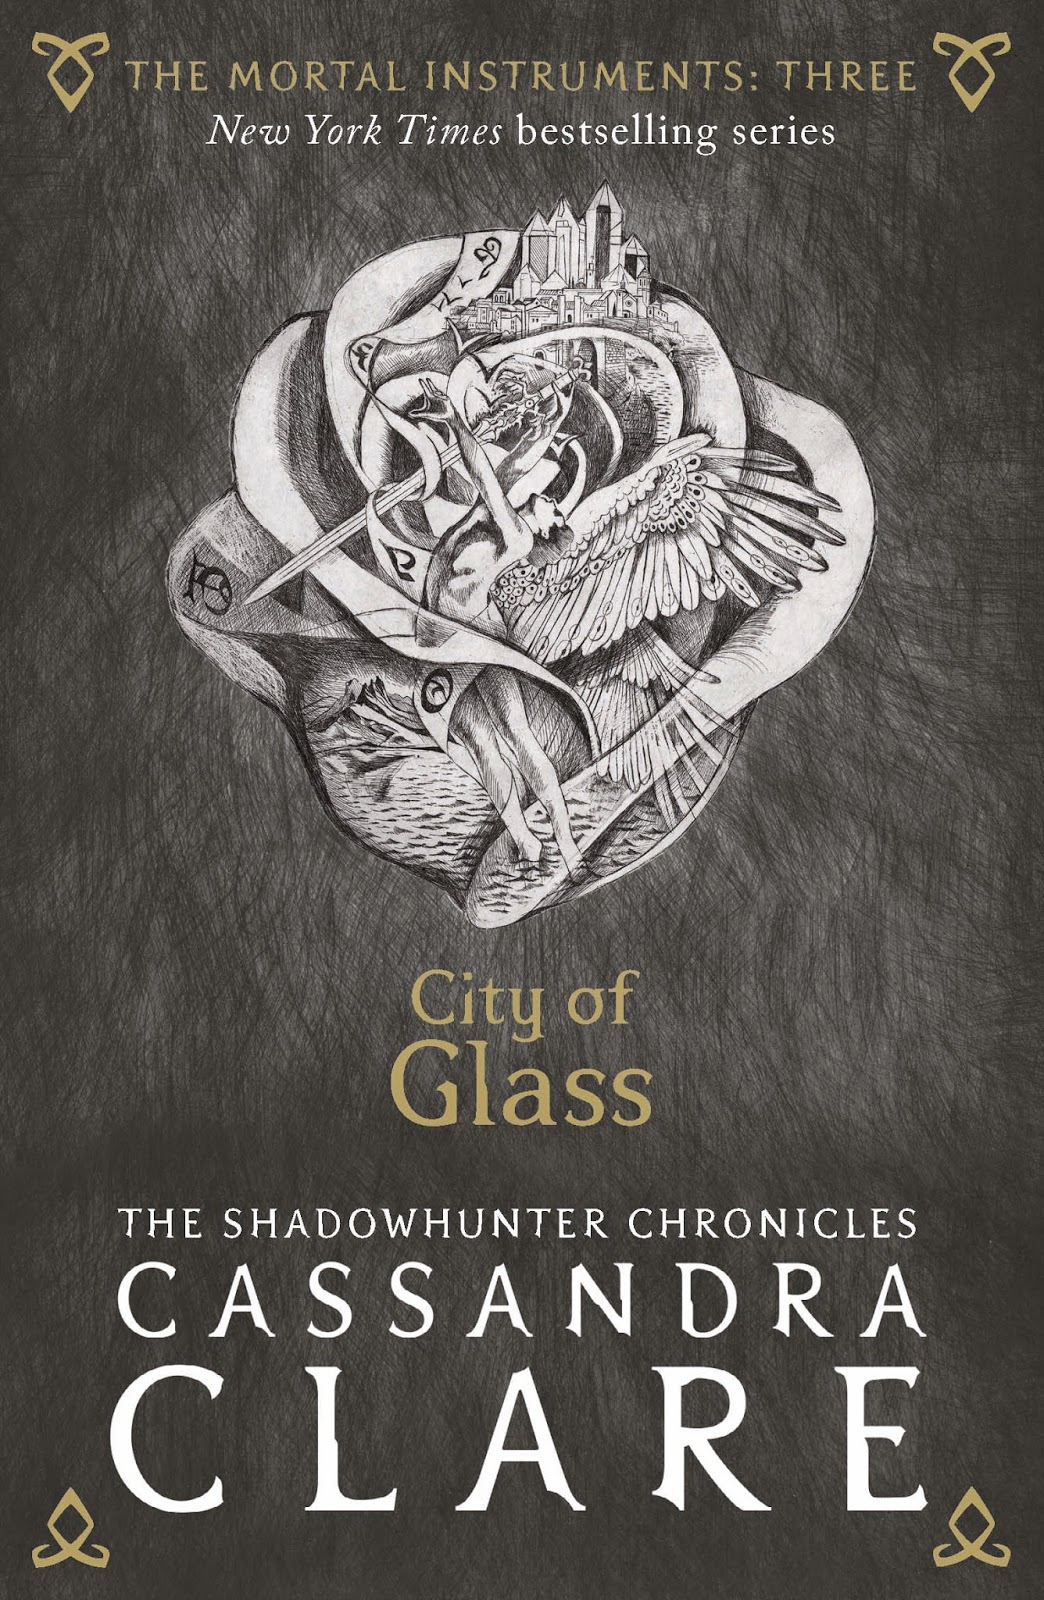 city of glass Buy the paperback book city of glass by cassandra clare at indigoca, canada's largest bookstore + get free shipping on books over $25.